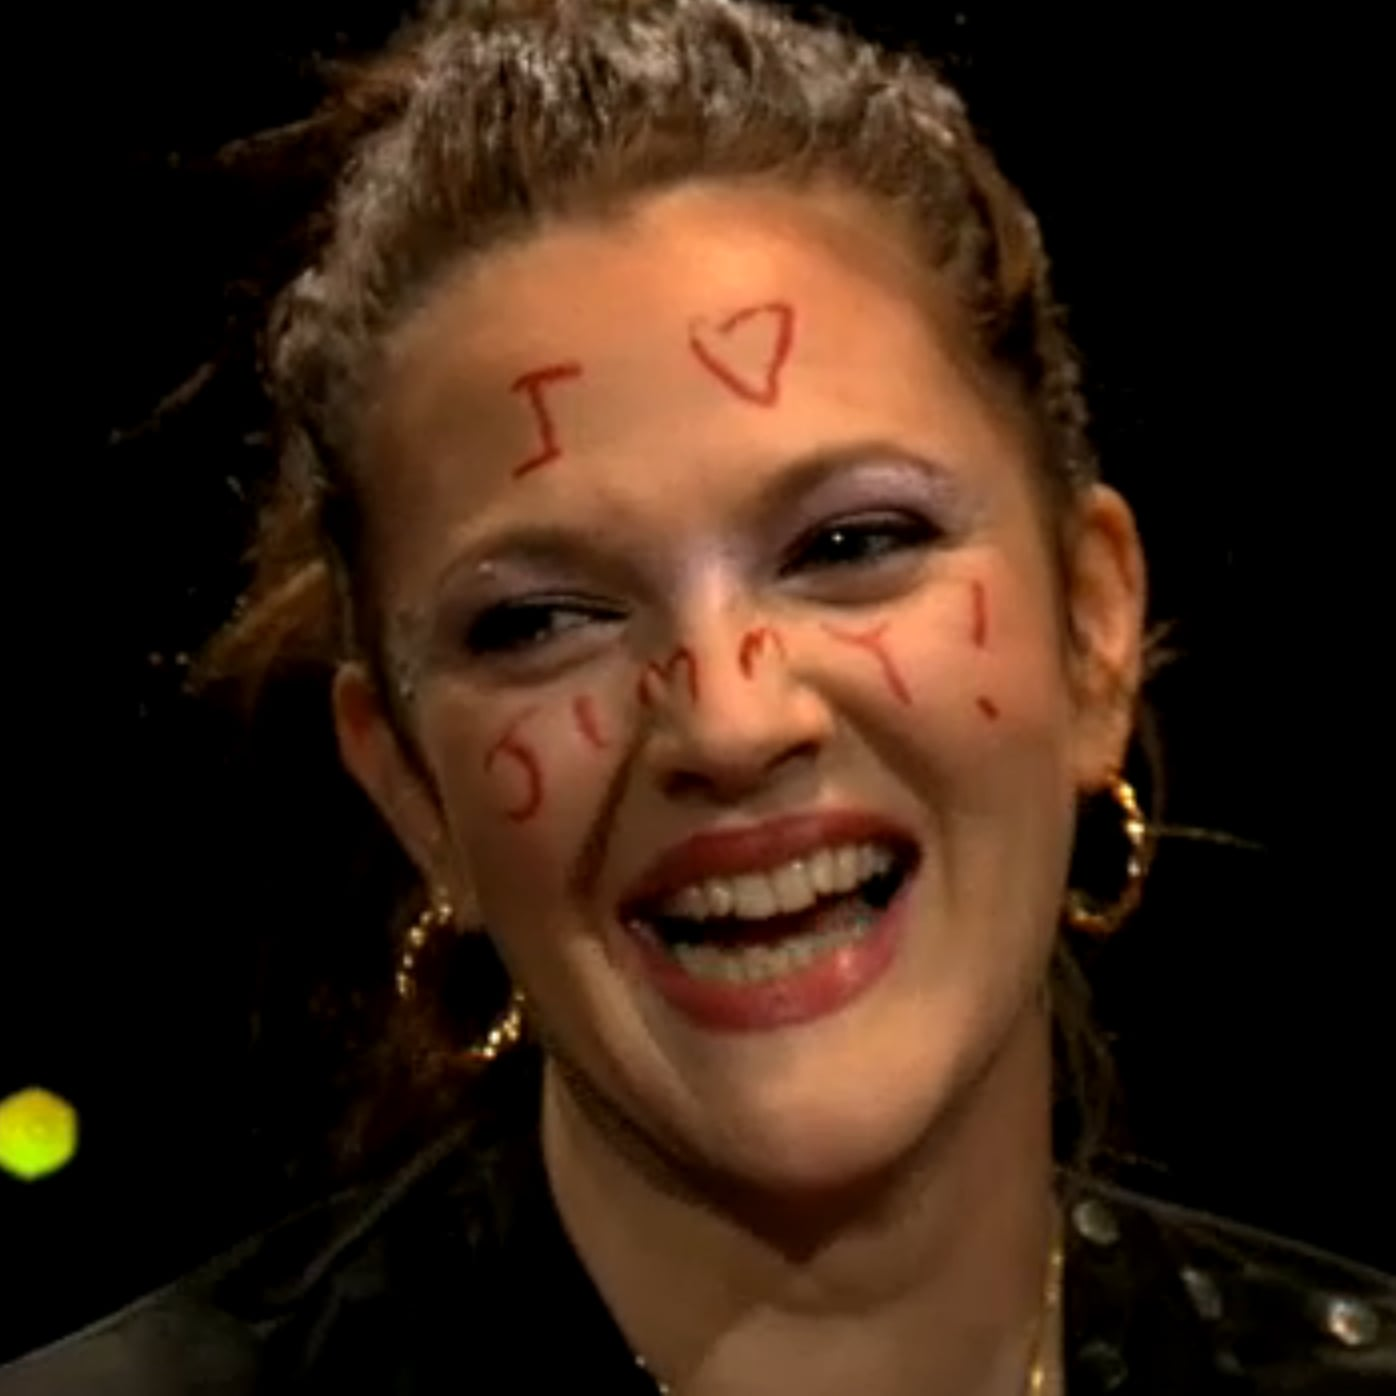 Has drew barrymore had facial paralyzes really